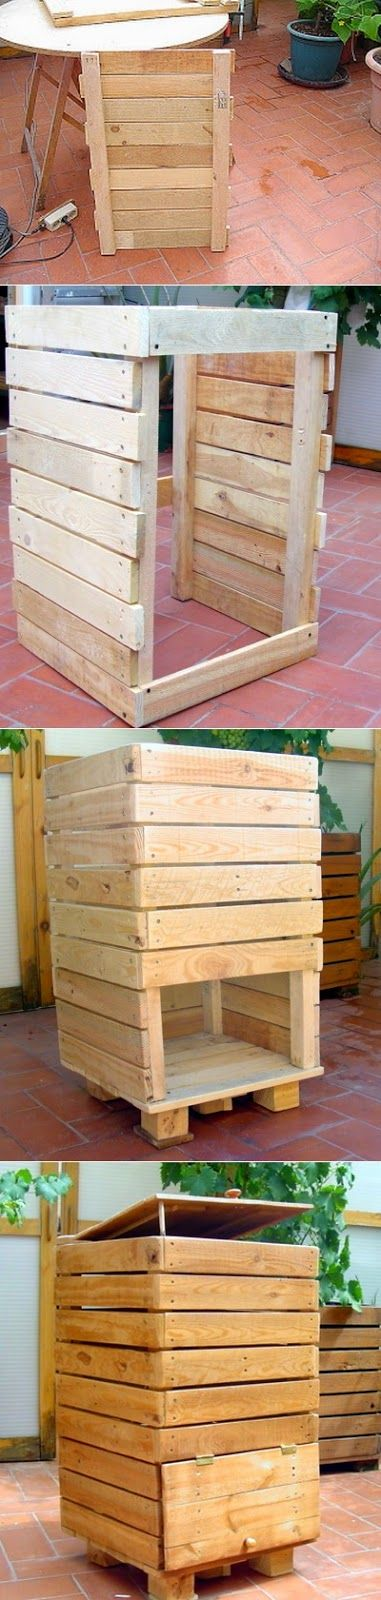 Alternative Gardning: Tutorial for compost container - Great for the environment and your garden.